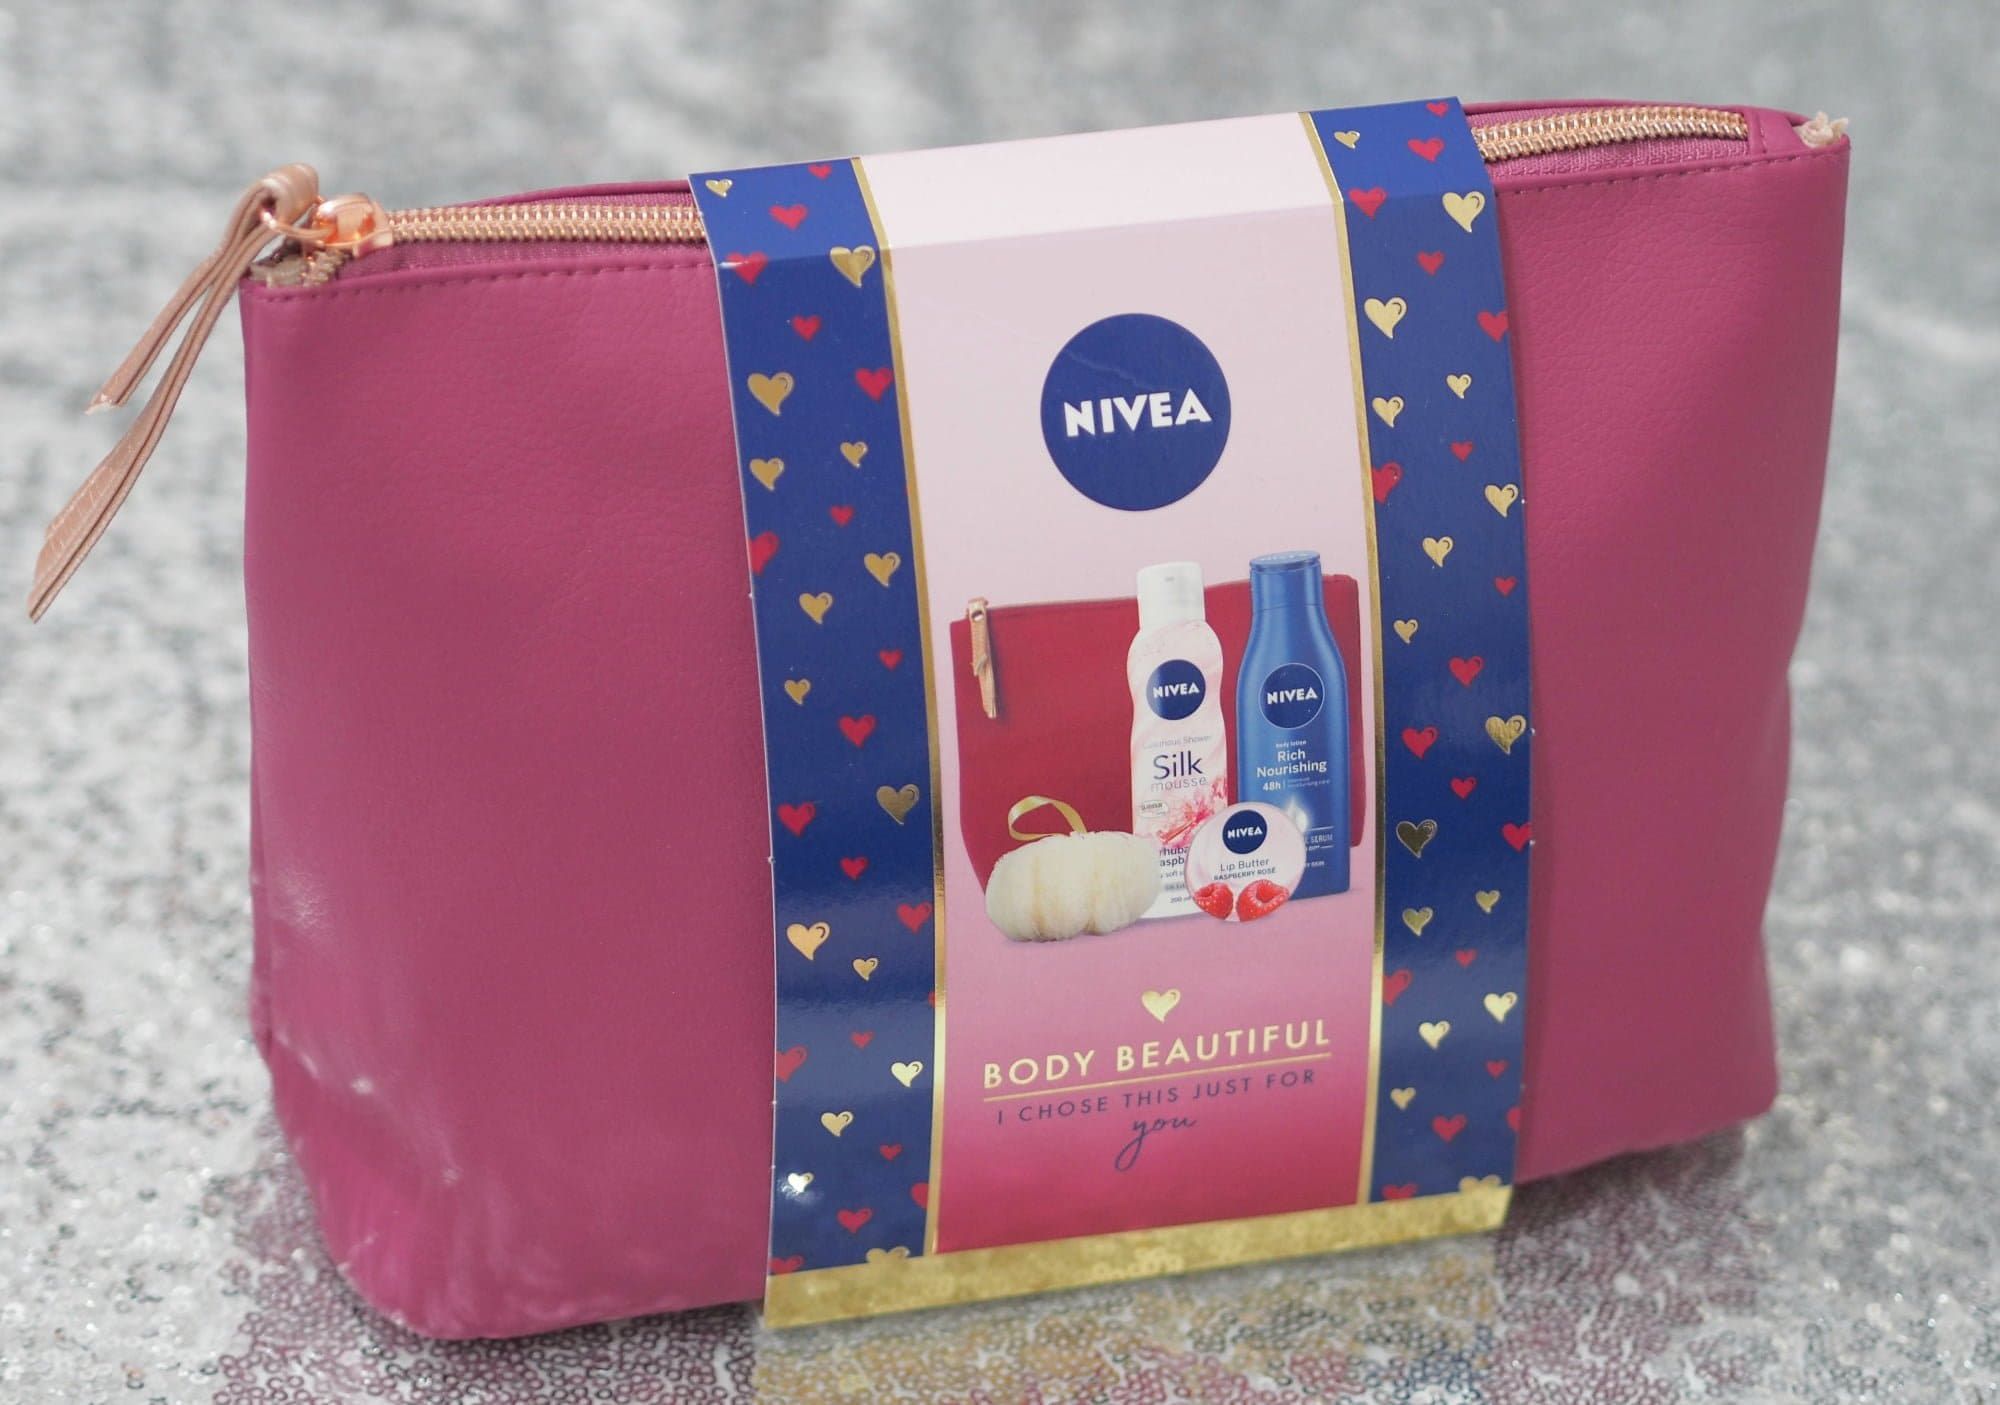 Nivea Christmas Gift Sets ft. the Nivea Body Beautiful Gift Set and the Nivea Spruce Up Wash Bag